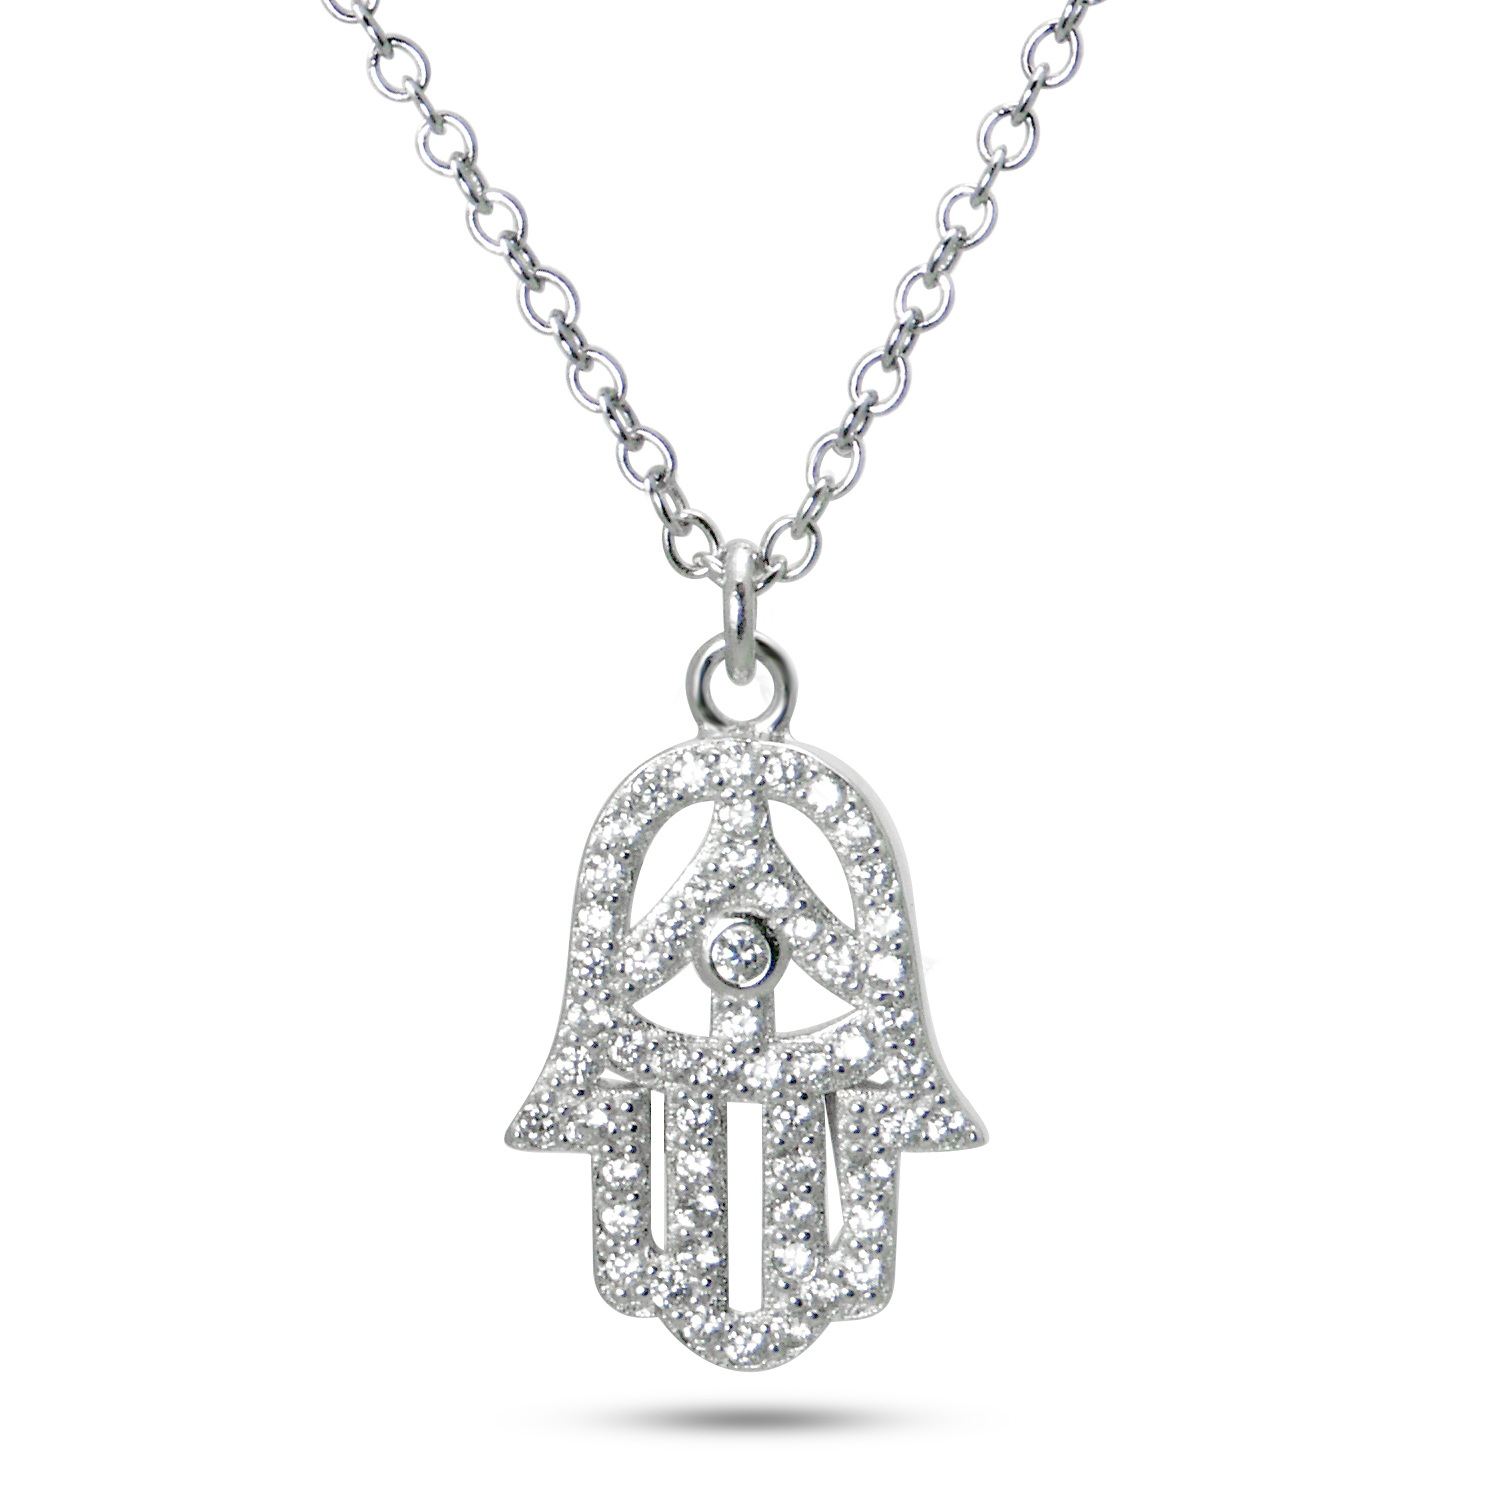 925 Sterling Silver CZ Cubic Zirconia Hamsa Hand of God Pendant Necklace